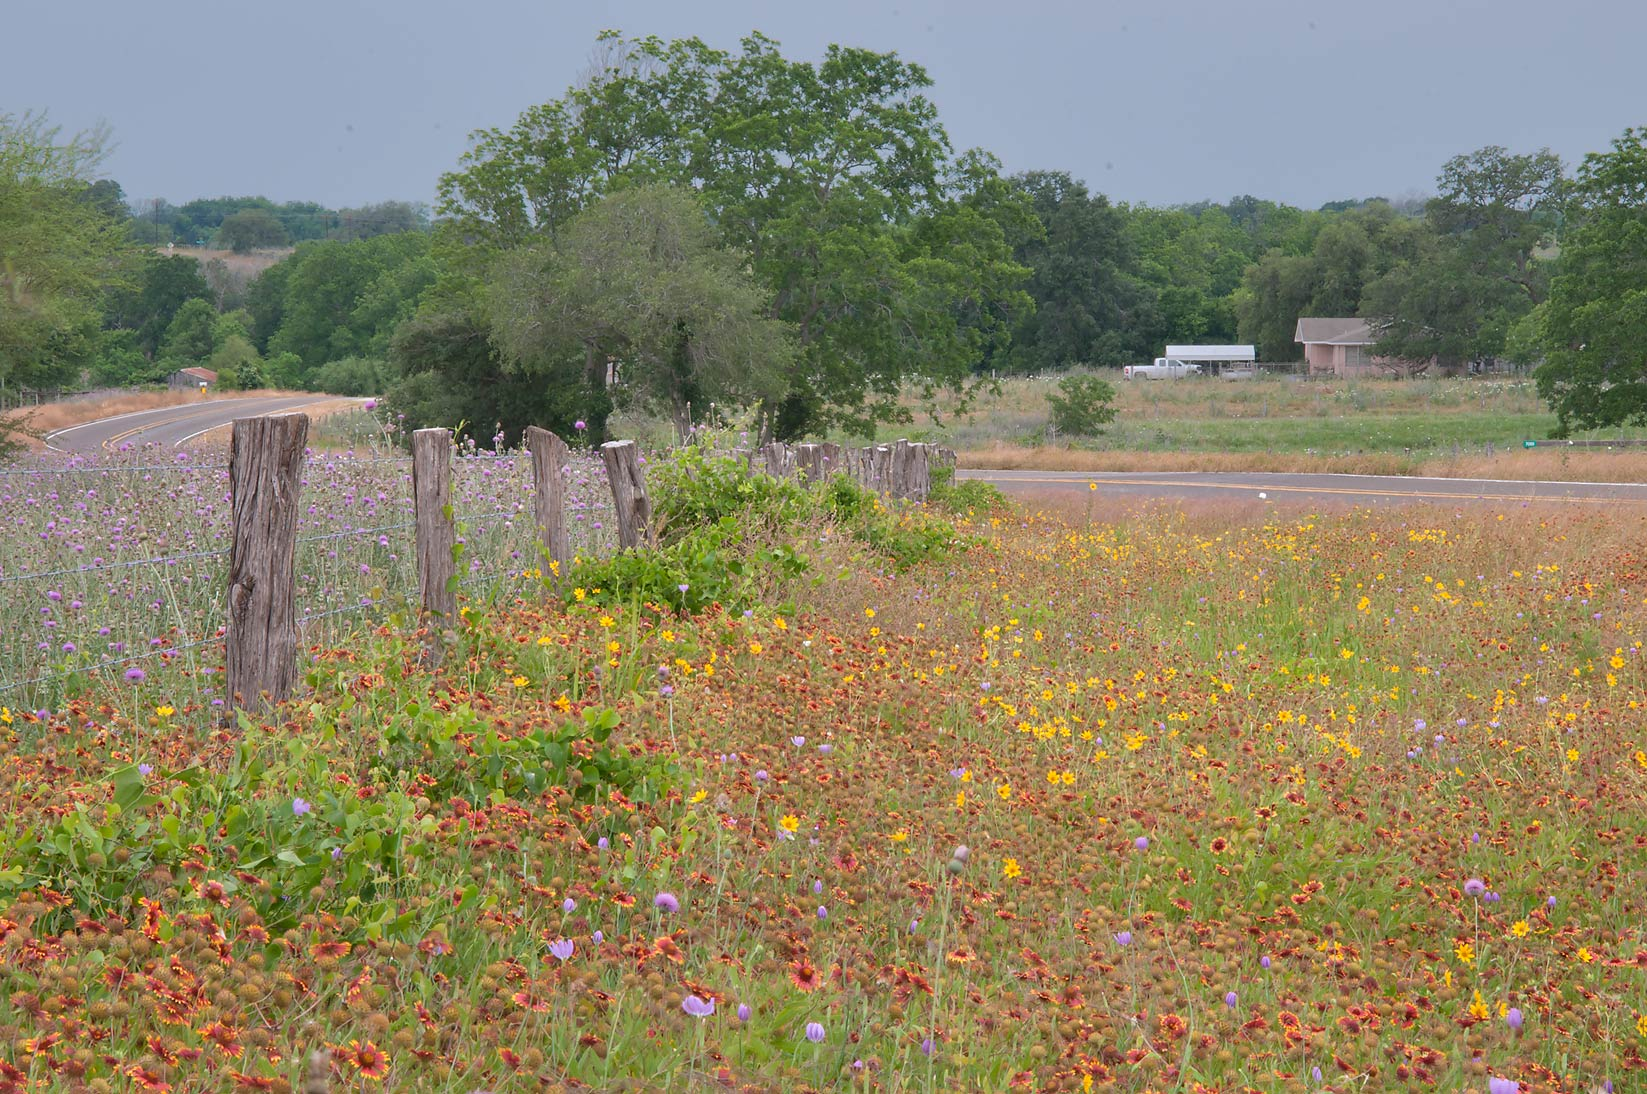 Flowers between a fence and Rd. FM 390 south from Lake Somerville. Texas